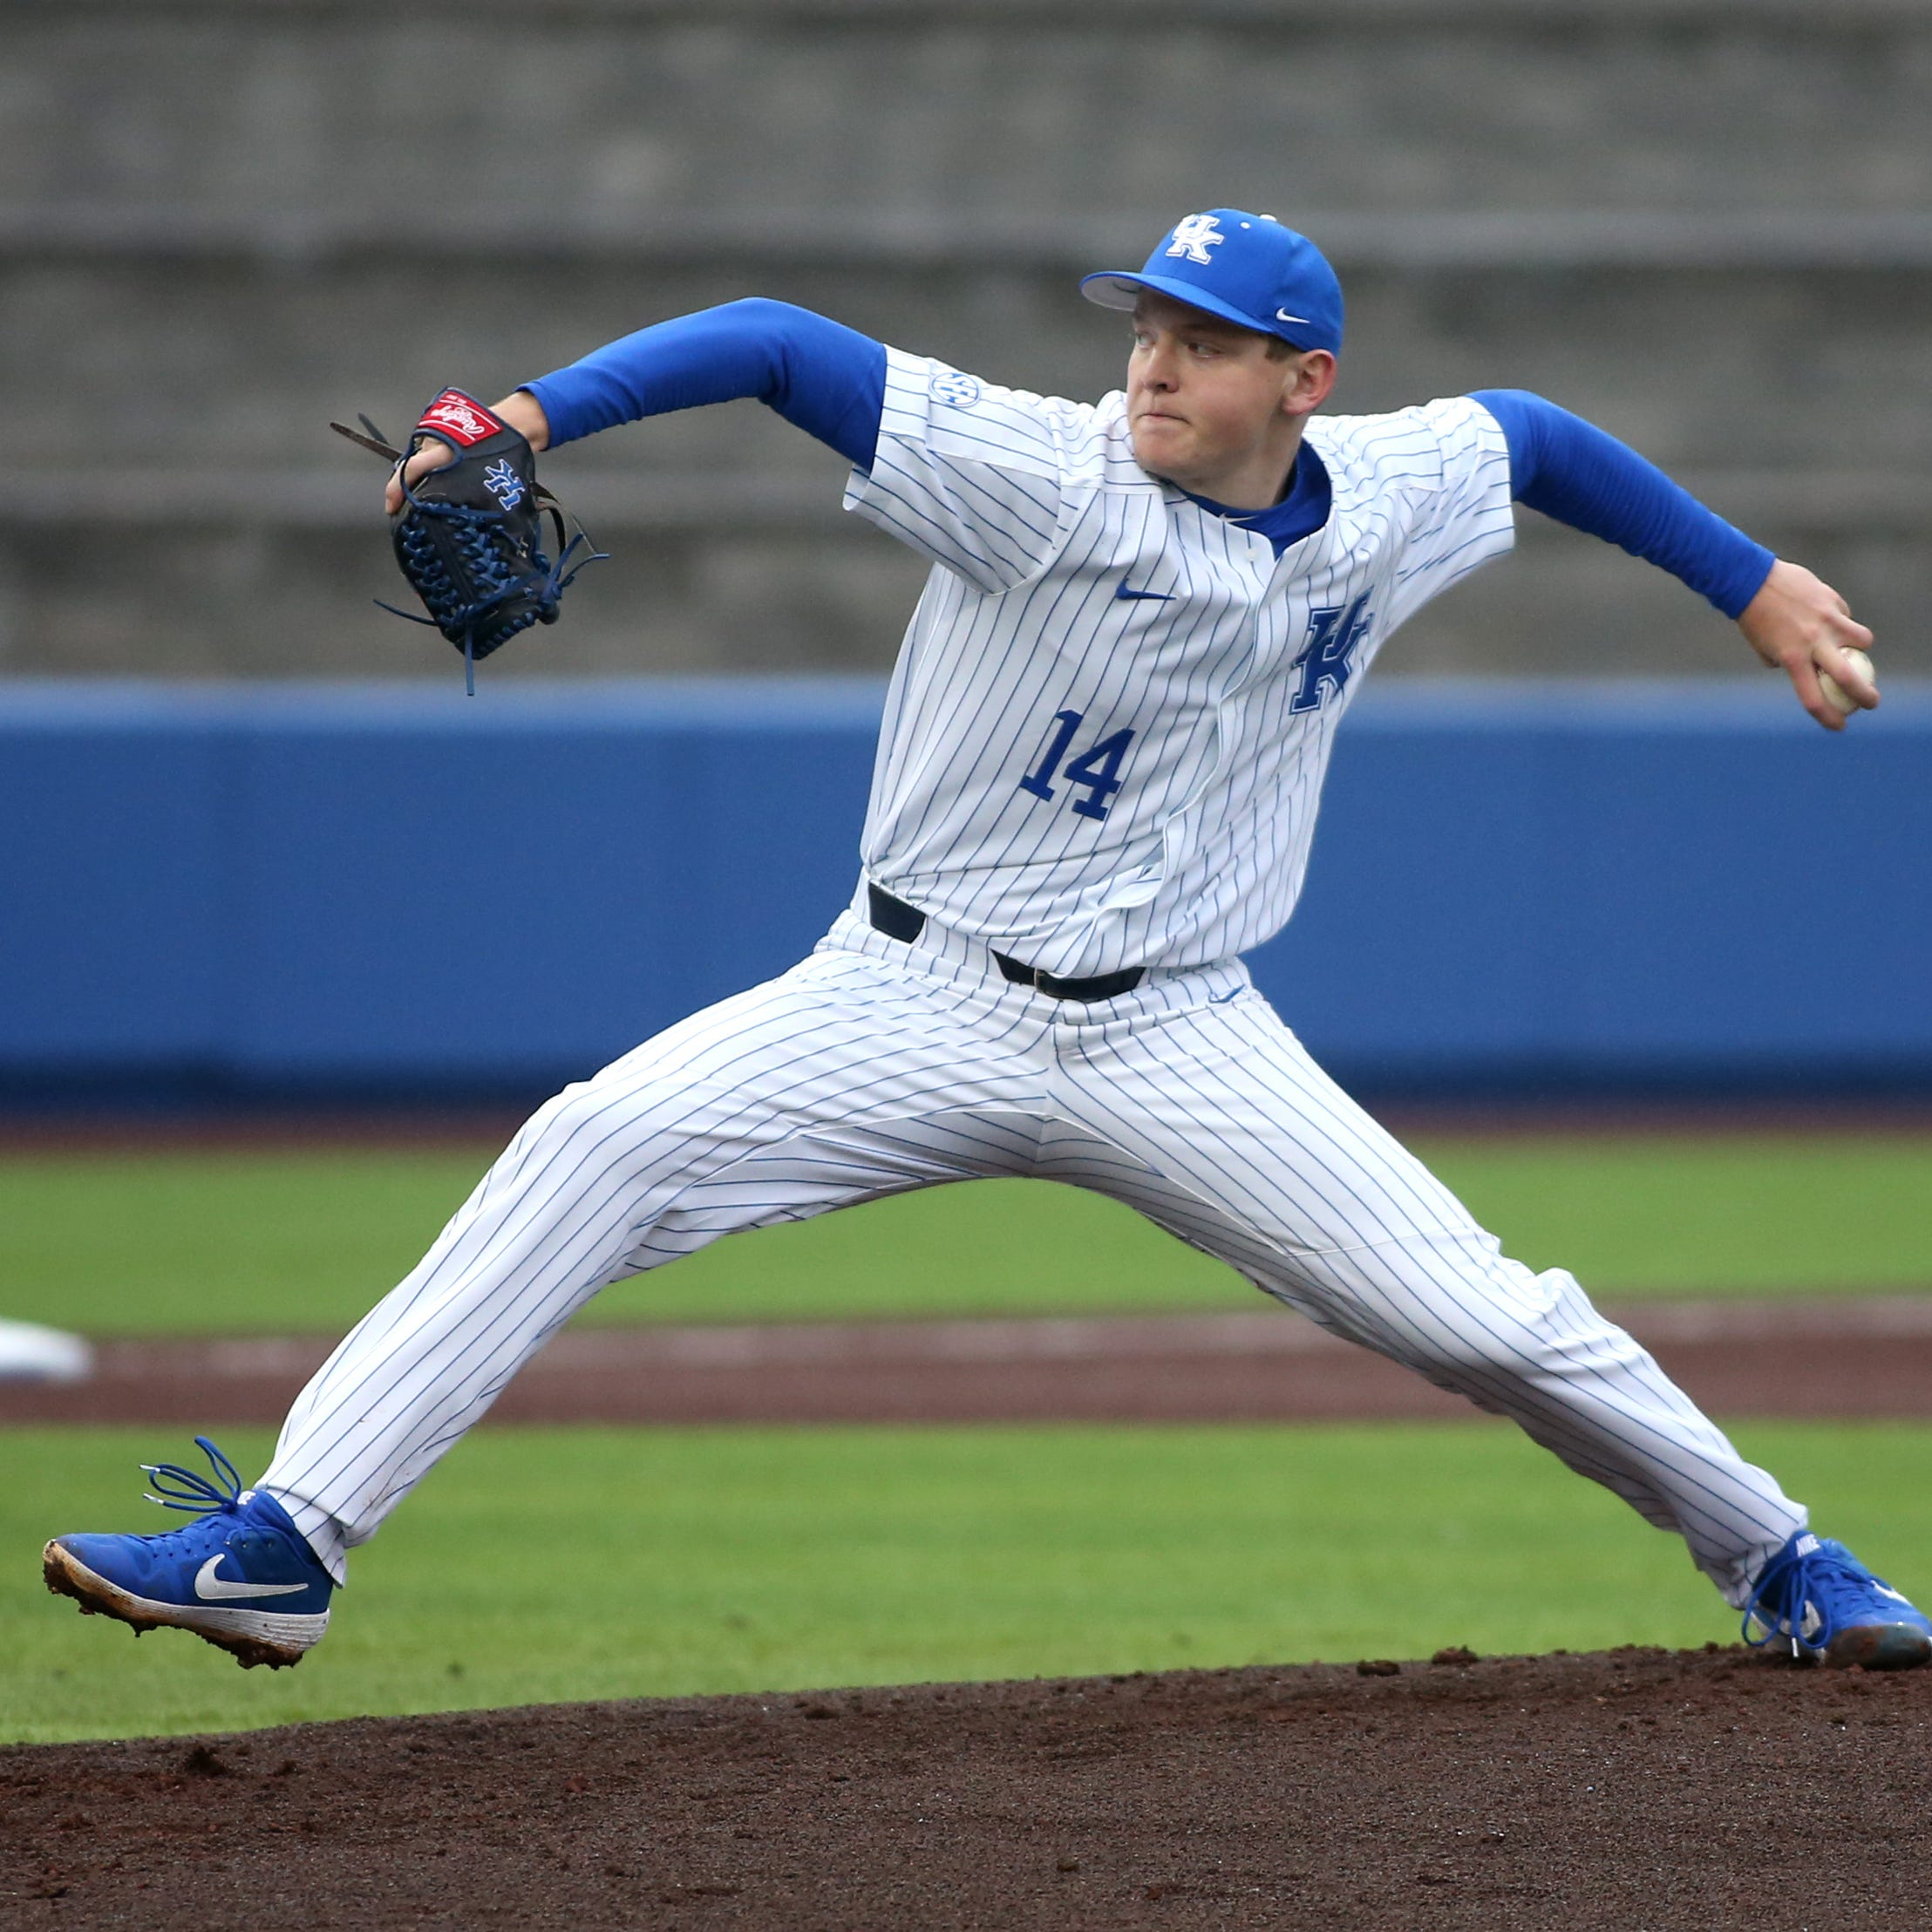 Former Wapahani star Zack Thompson likely to go in top 15 of MLB Draft